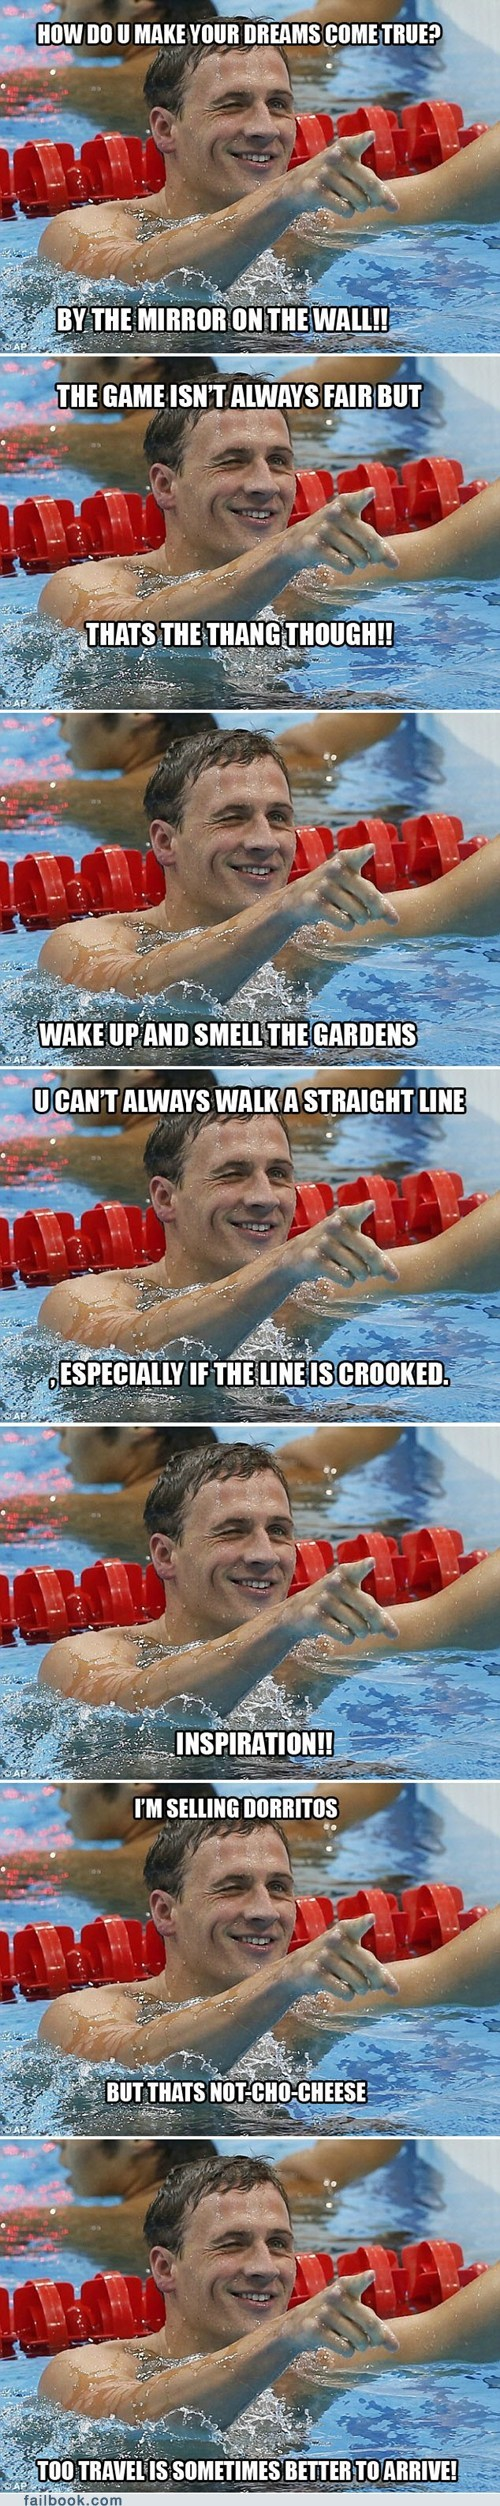 Failbook: Ryan Lochte's Deeply Profound Tweeting